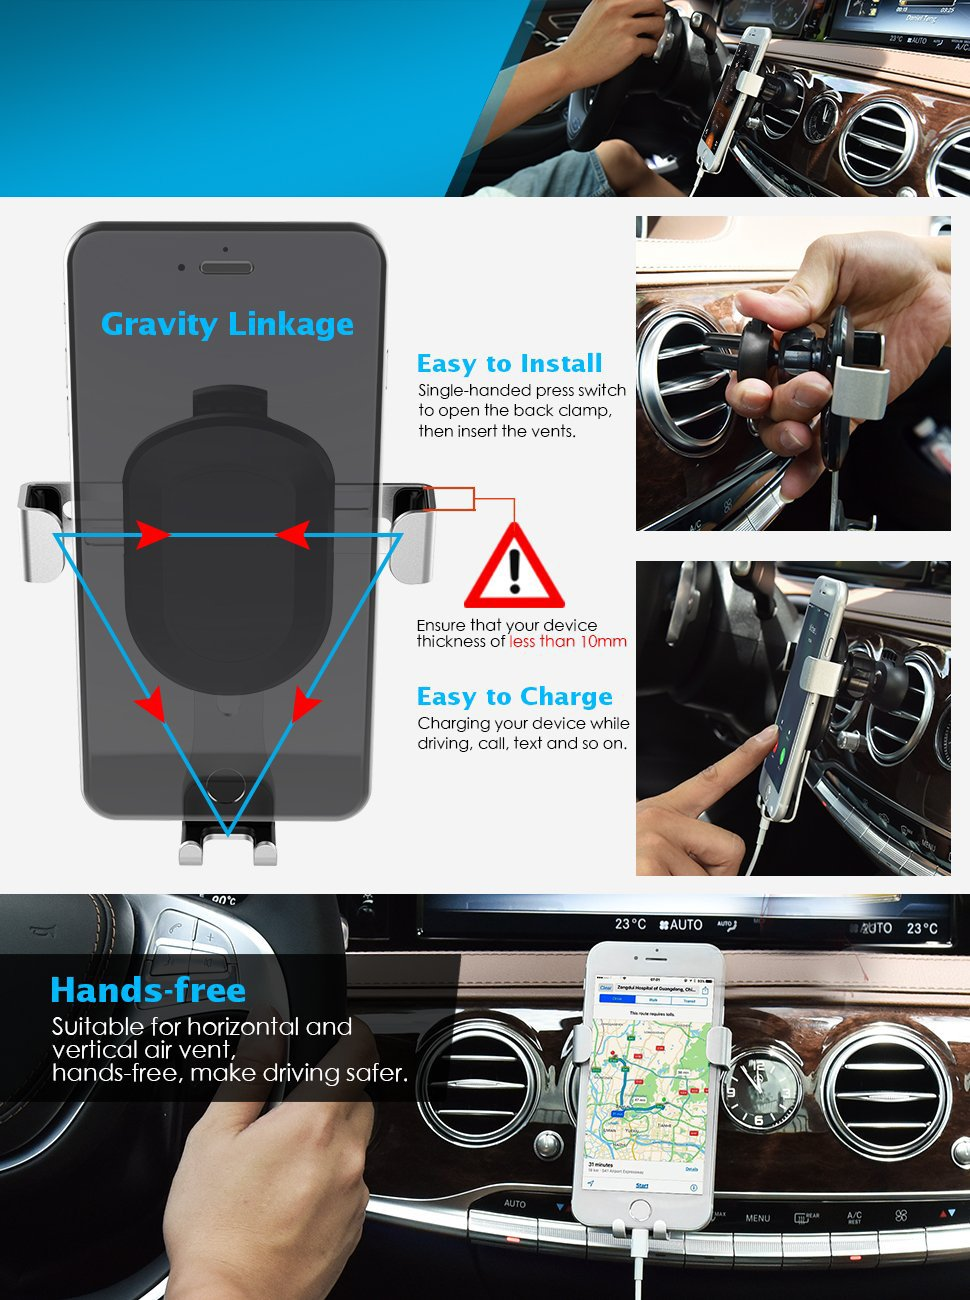 (UPGRADED VERSION) LENPOW Car Phone Mount Holder Universal Gravity Car Air Vent Phone cradle Stand Auto Lock and Release, 360°Rotate for iPhone X 8 7 6s 6 Plus Samsung Galaxy s8 plus S6 S5 up to 6.2\